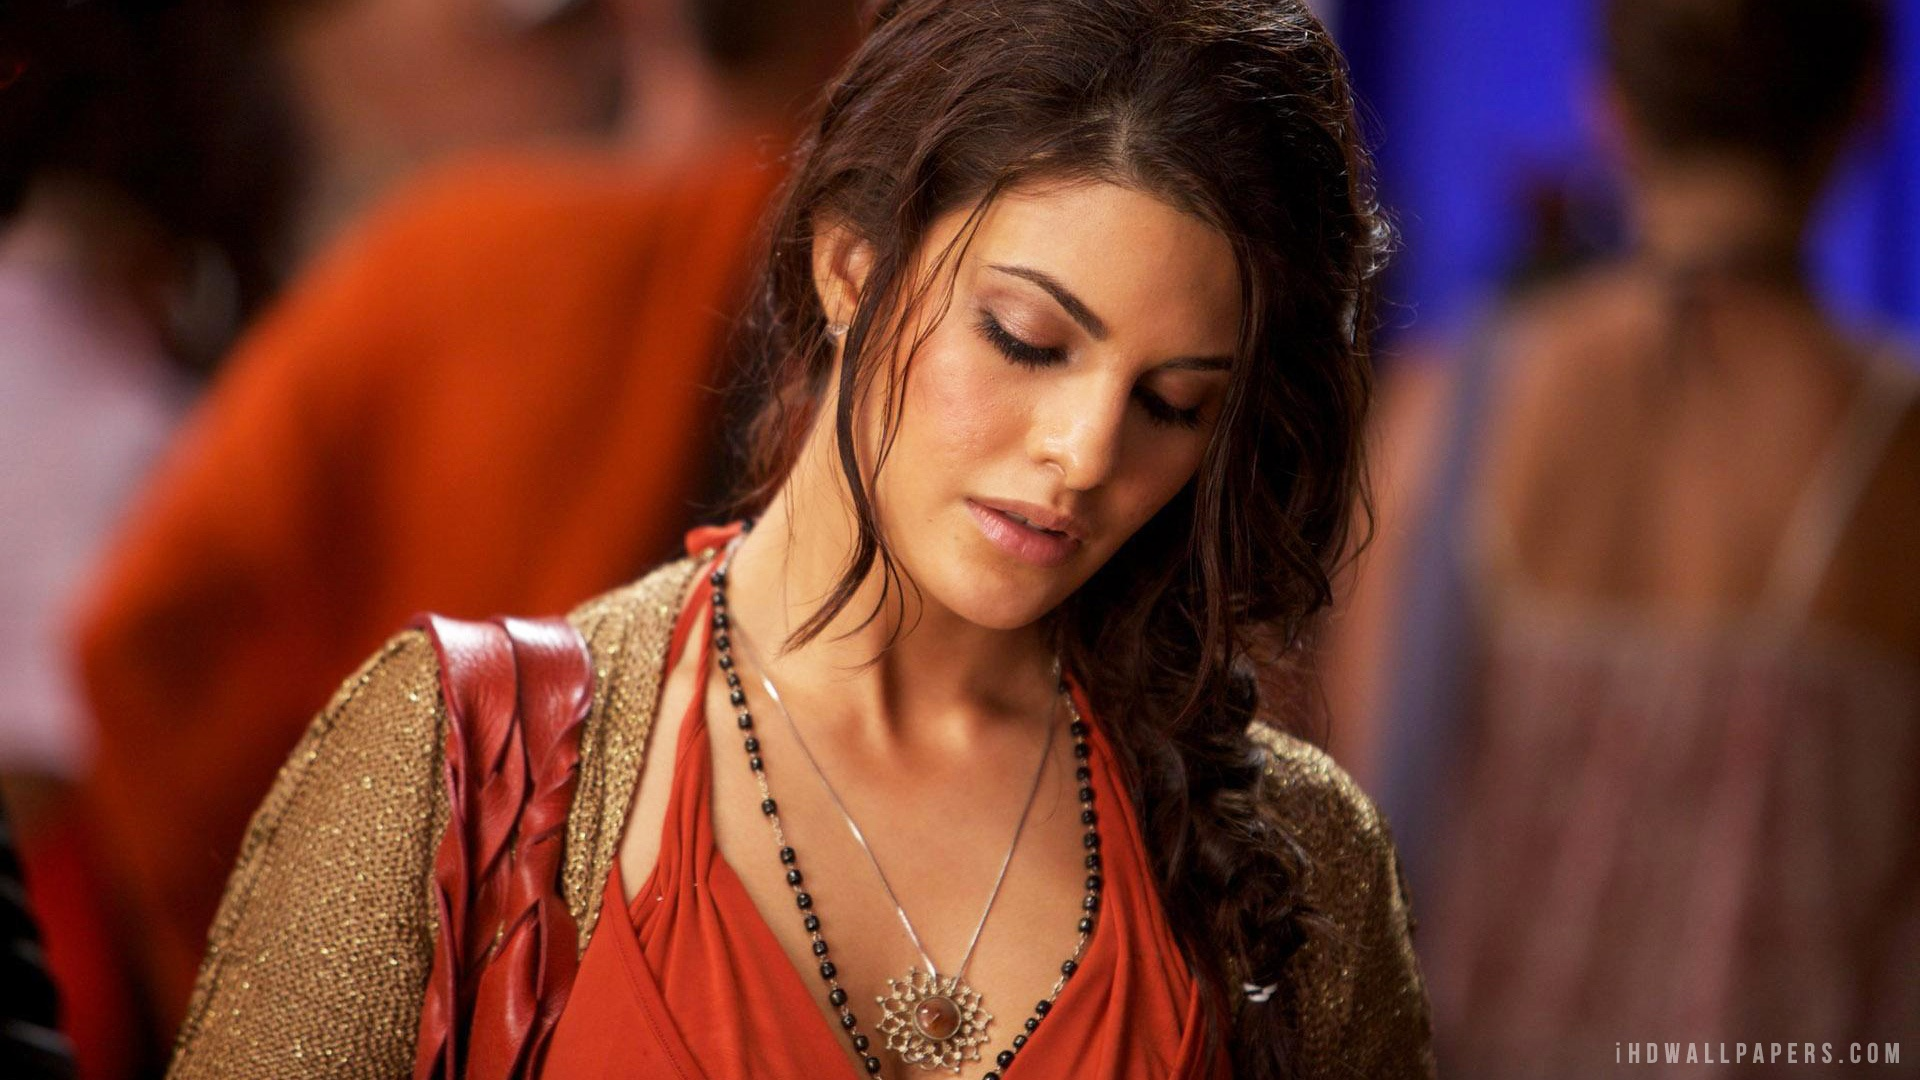 Jacqueline Fernandez Hot HD Wallpaper - iHD Wallpapers